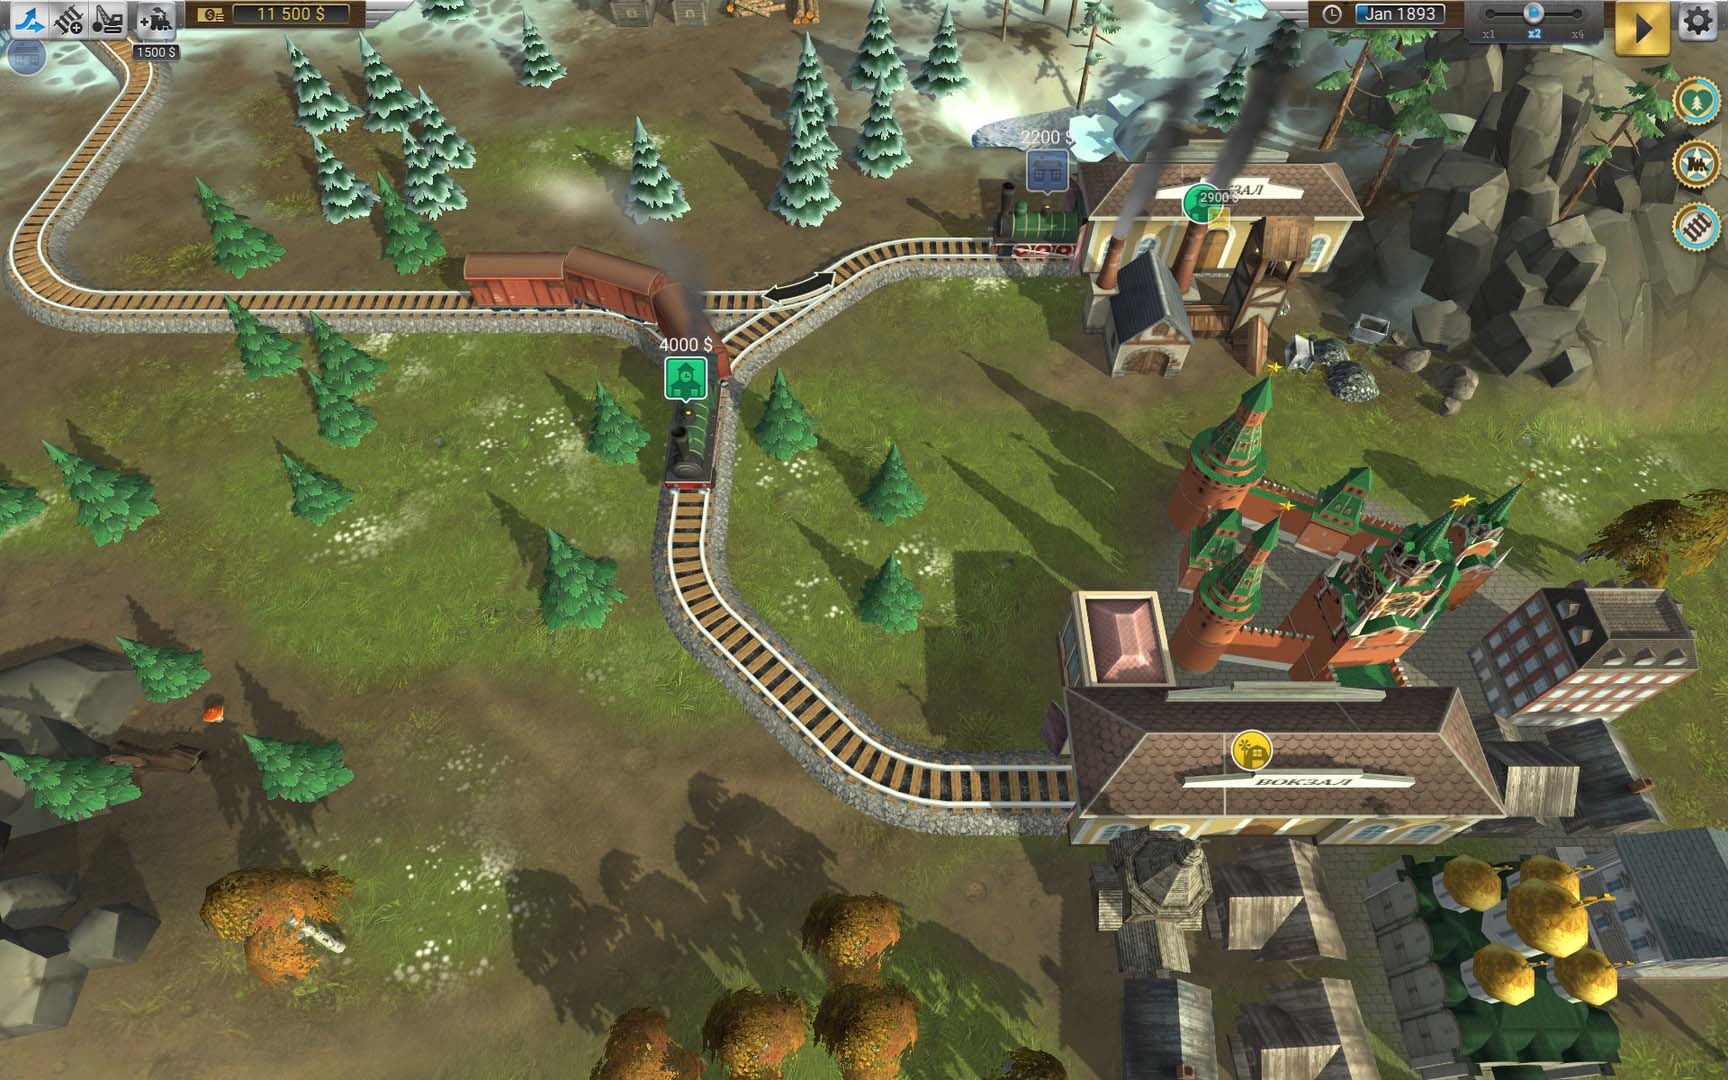 Train Valley (Steam Key, GLOBAL)